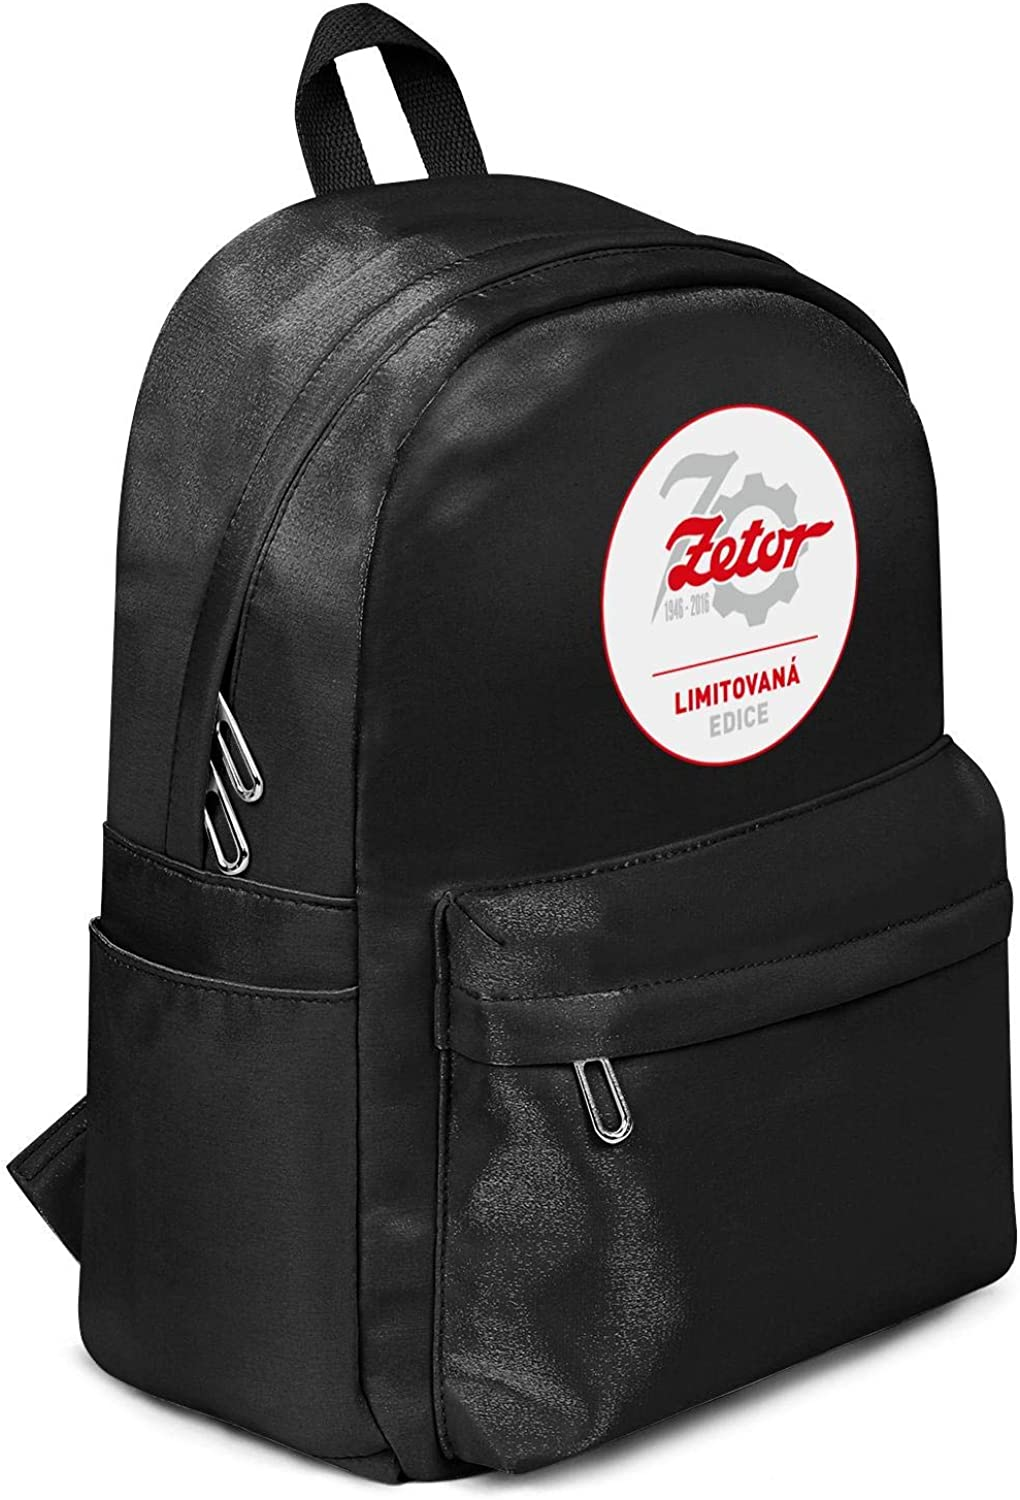 Womens Girl Boys Bag Purse Zetor-Logo Casual Nylon Durable 13 Inch Laptop Compartment Backpack Bag Purse